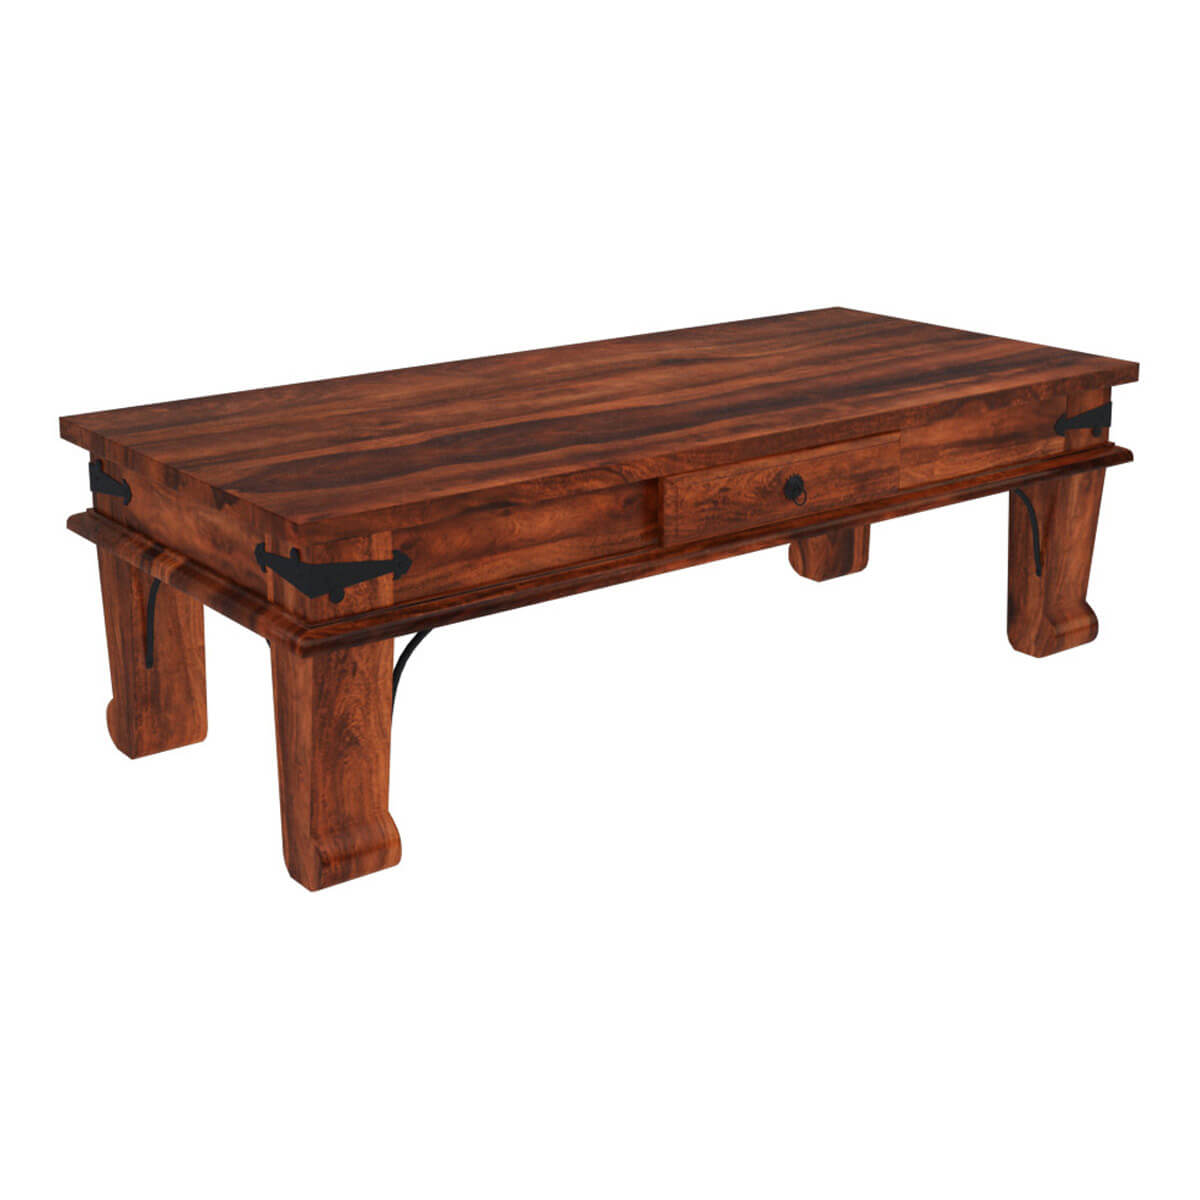 Rustic All Wood Coffee Table: Rustic Solid Wood Rectangular One Drawer Urban Shaker